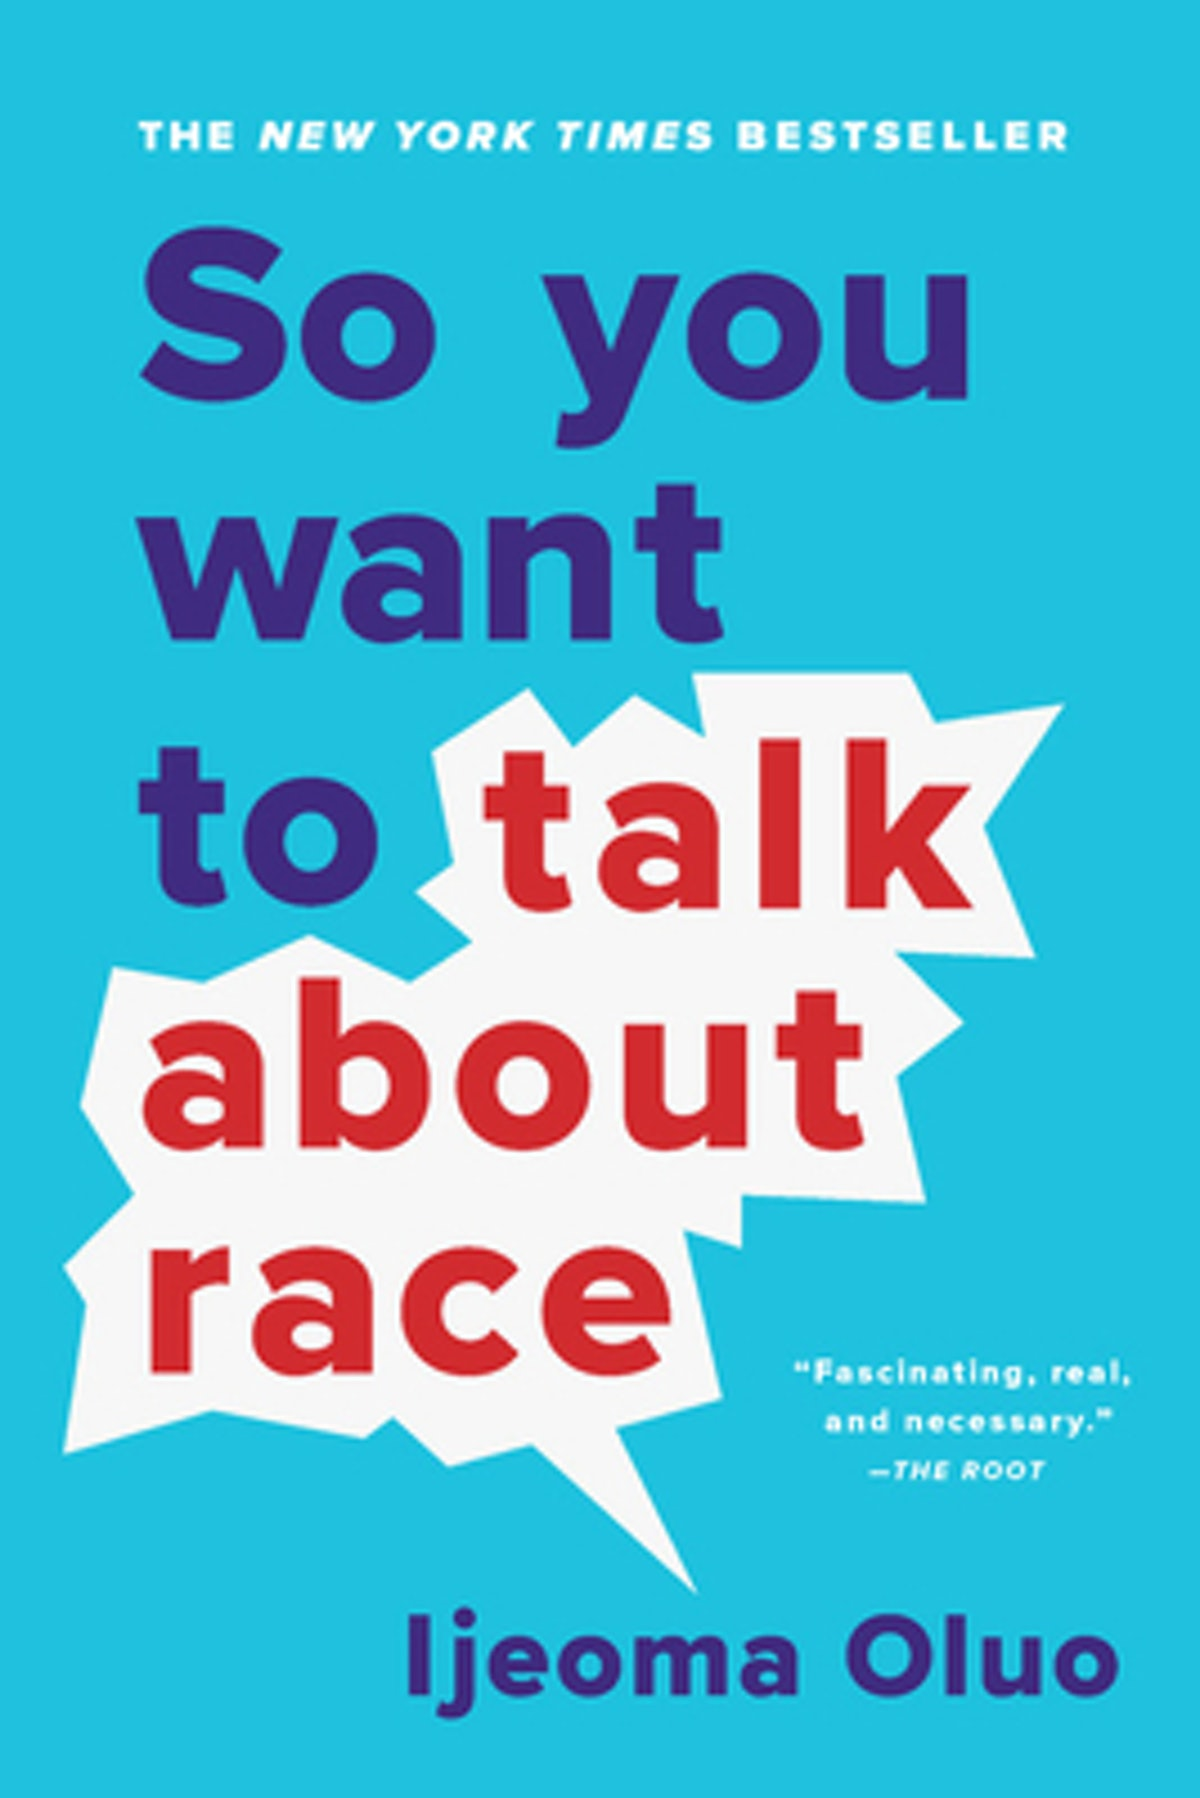 """""""So You Want to Talk About Race"""" by Ijeoma Oluo"""